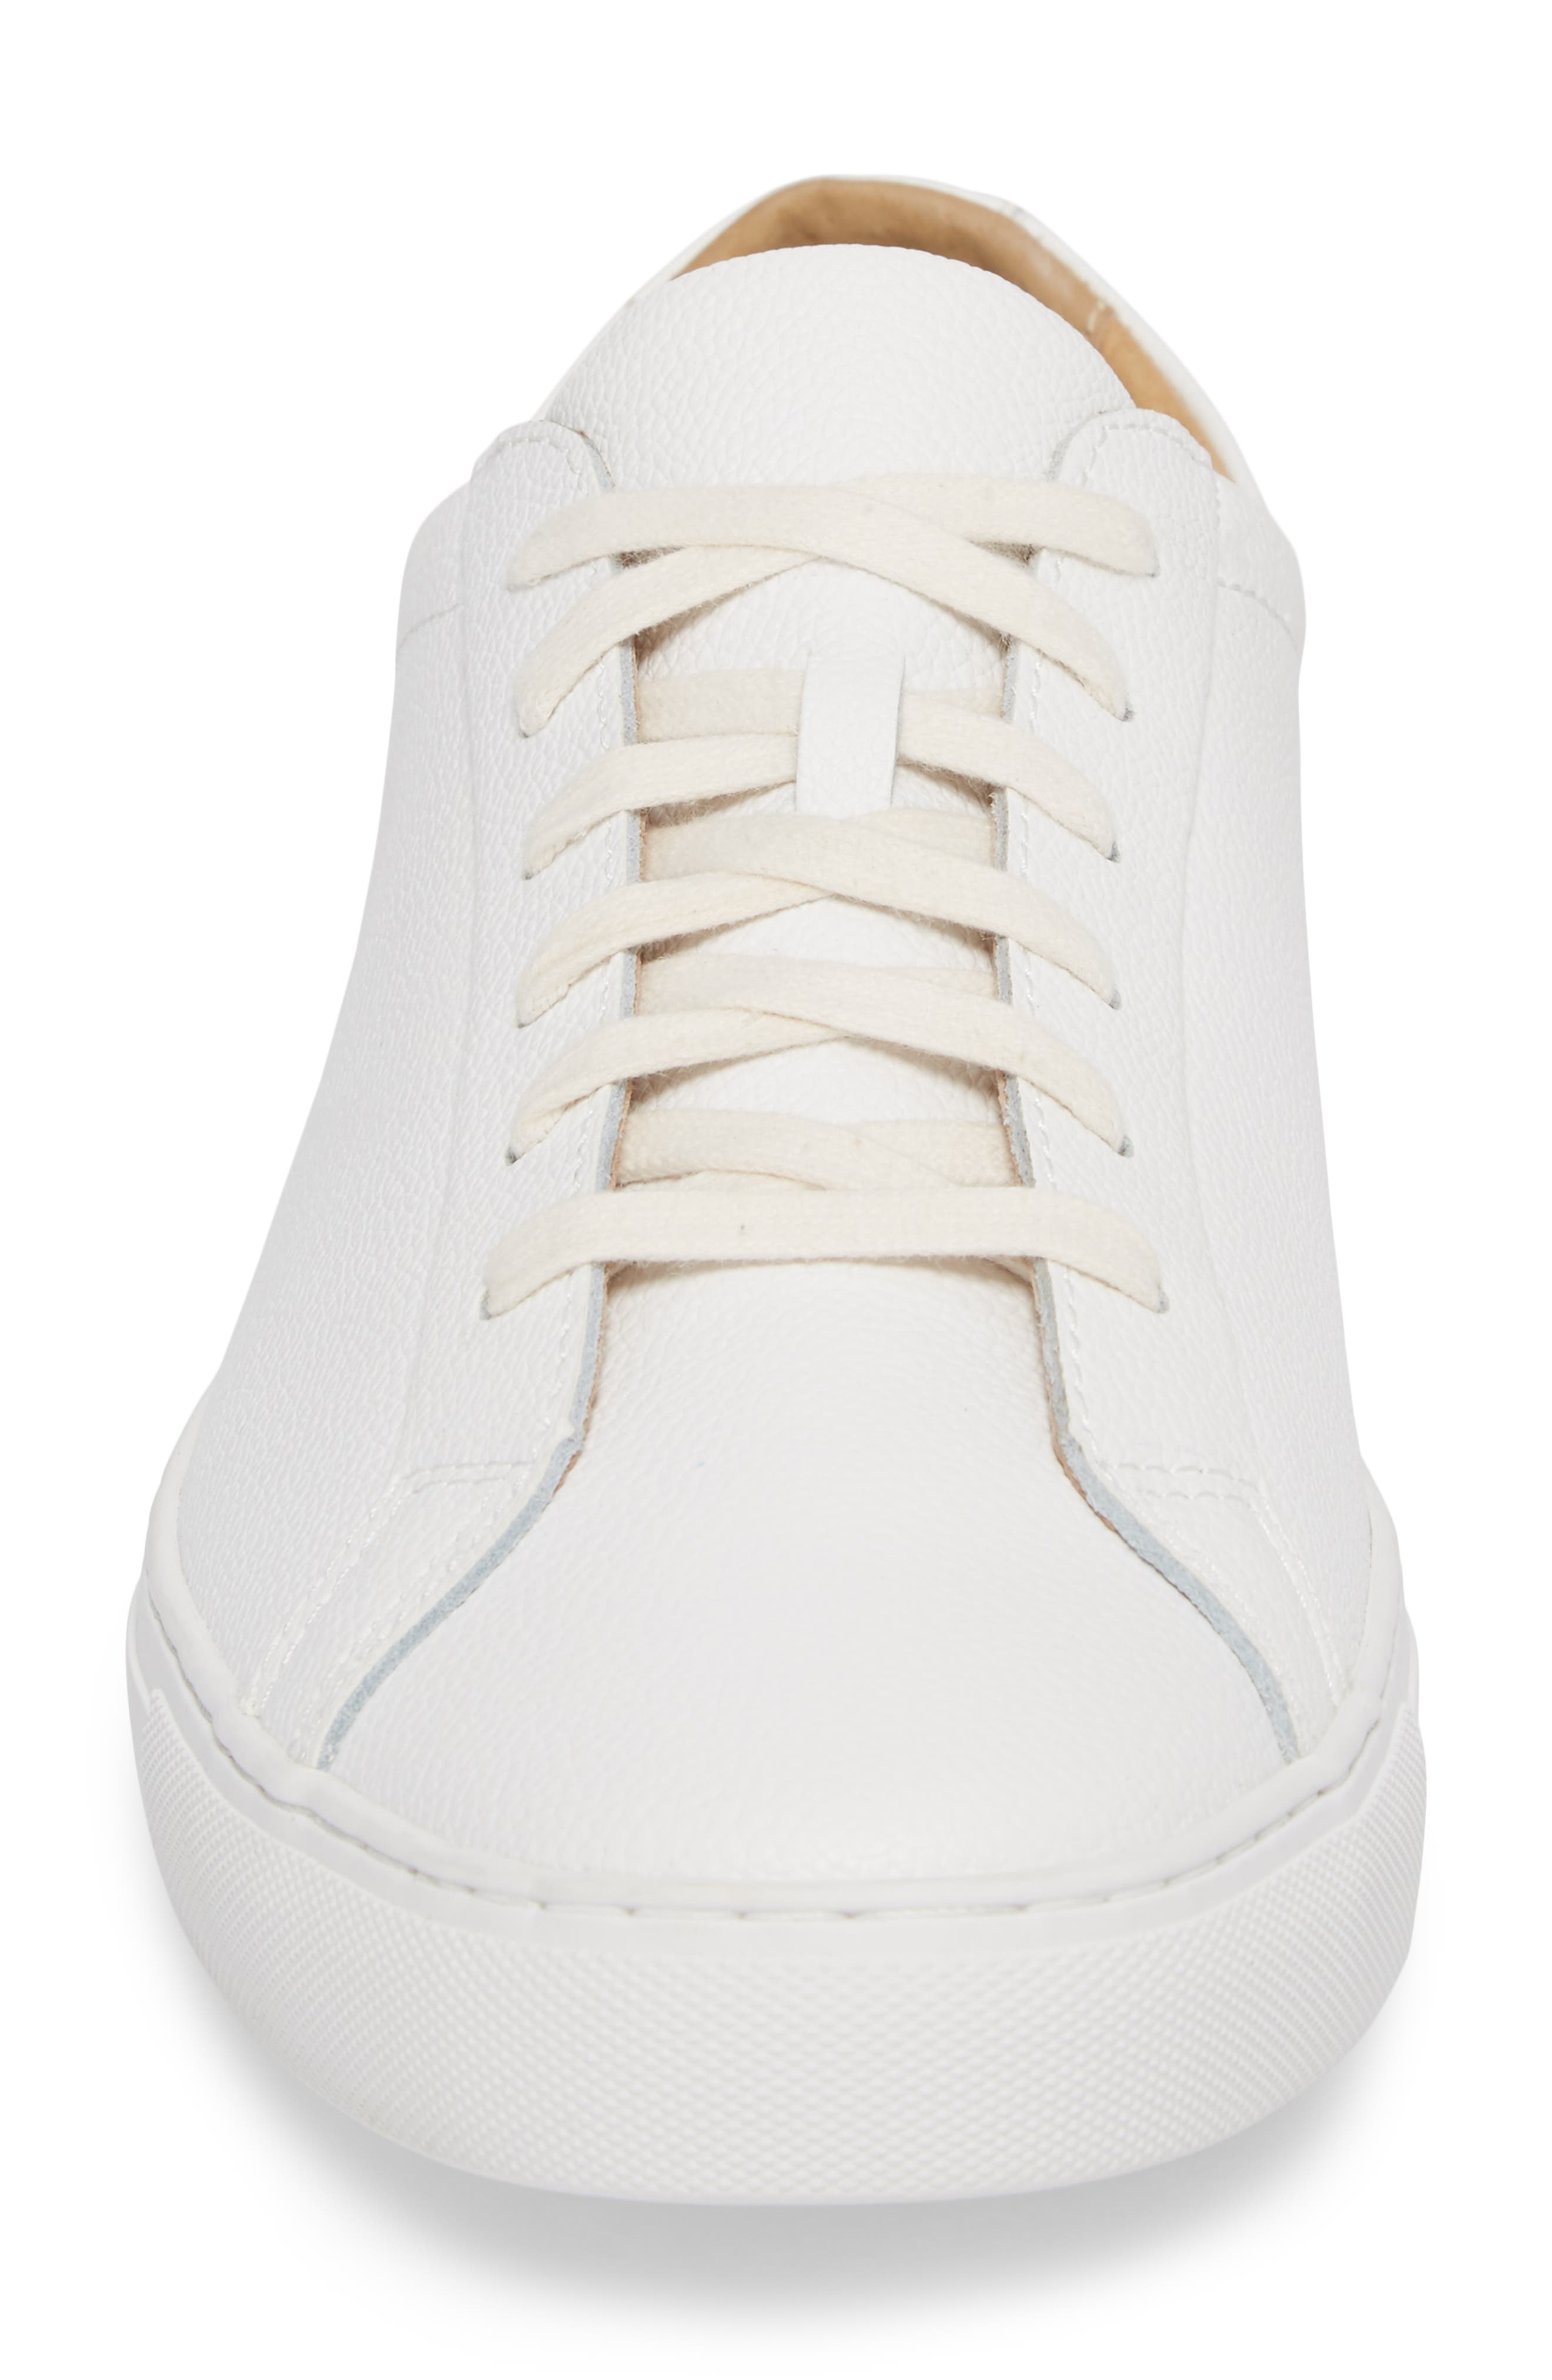 Kennedy Low Top Sneaker,                             Alternate thumbnail 4, color,                             White Leather